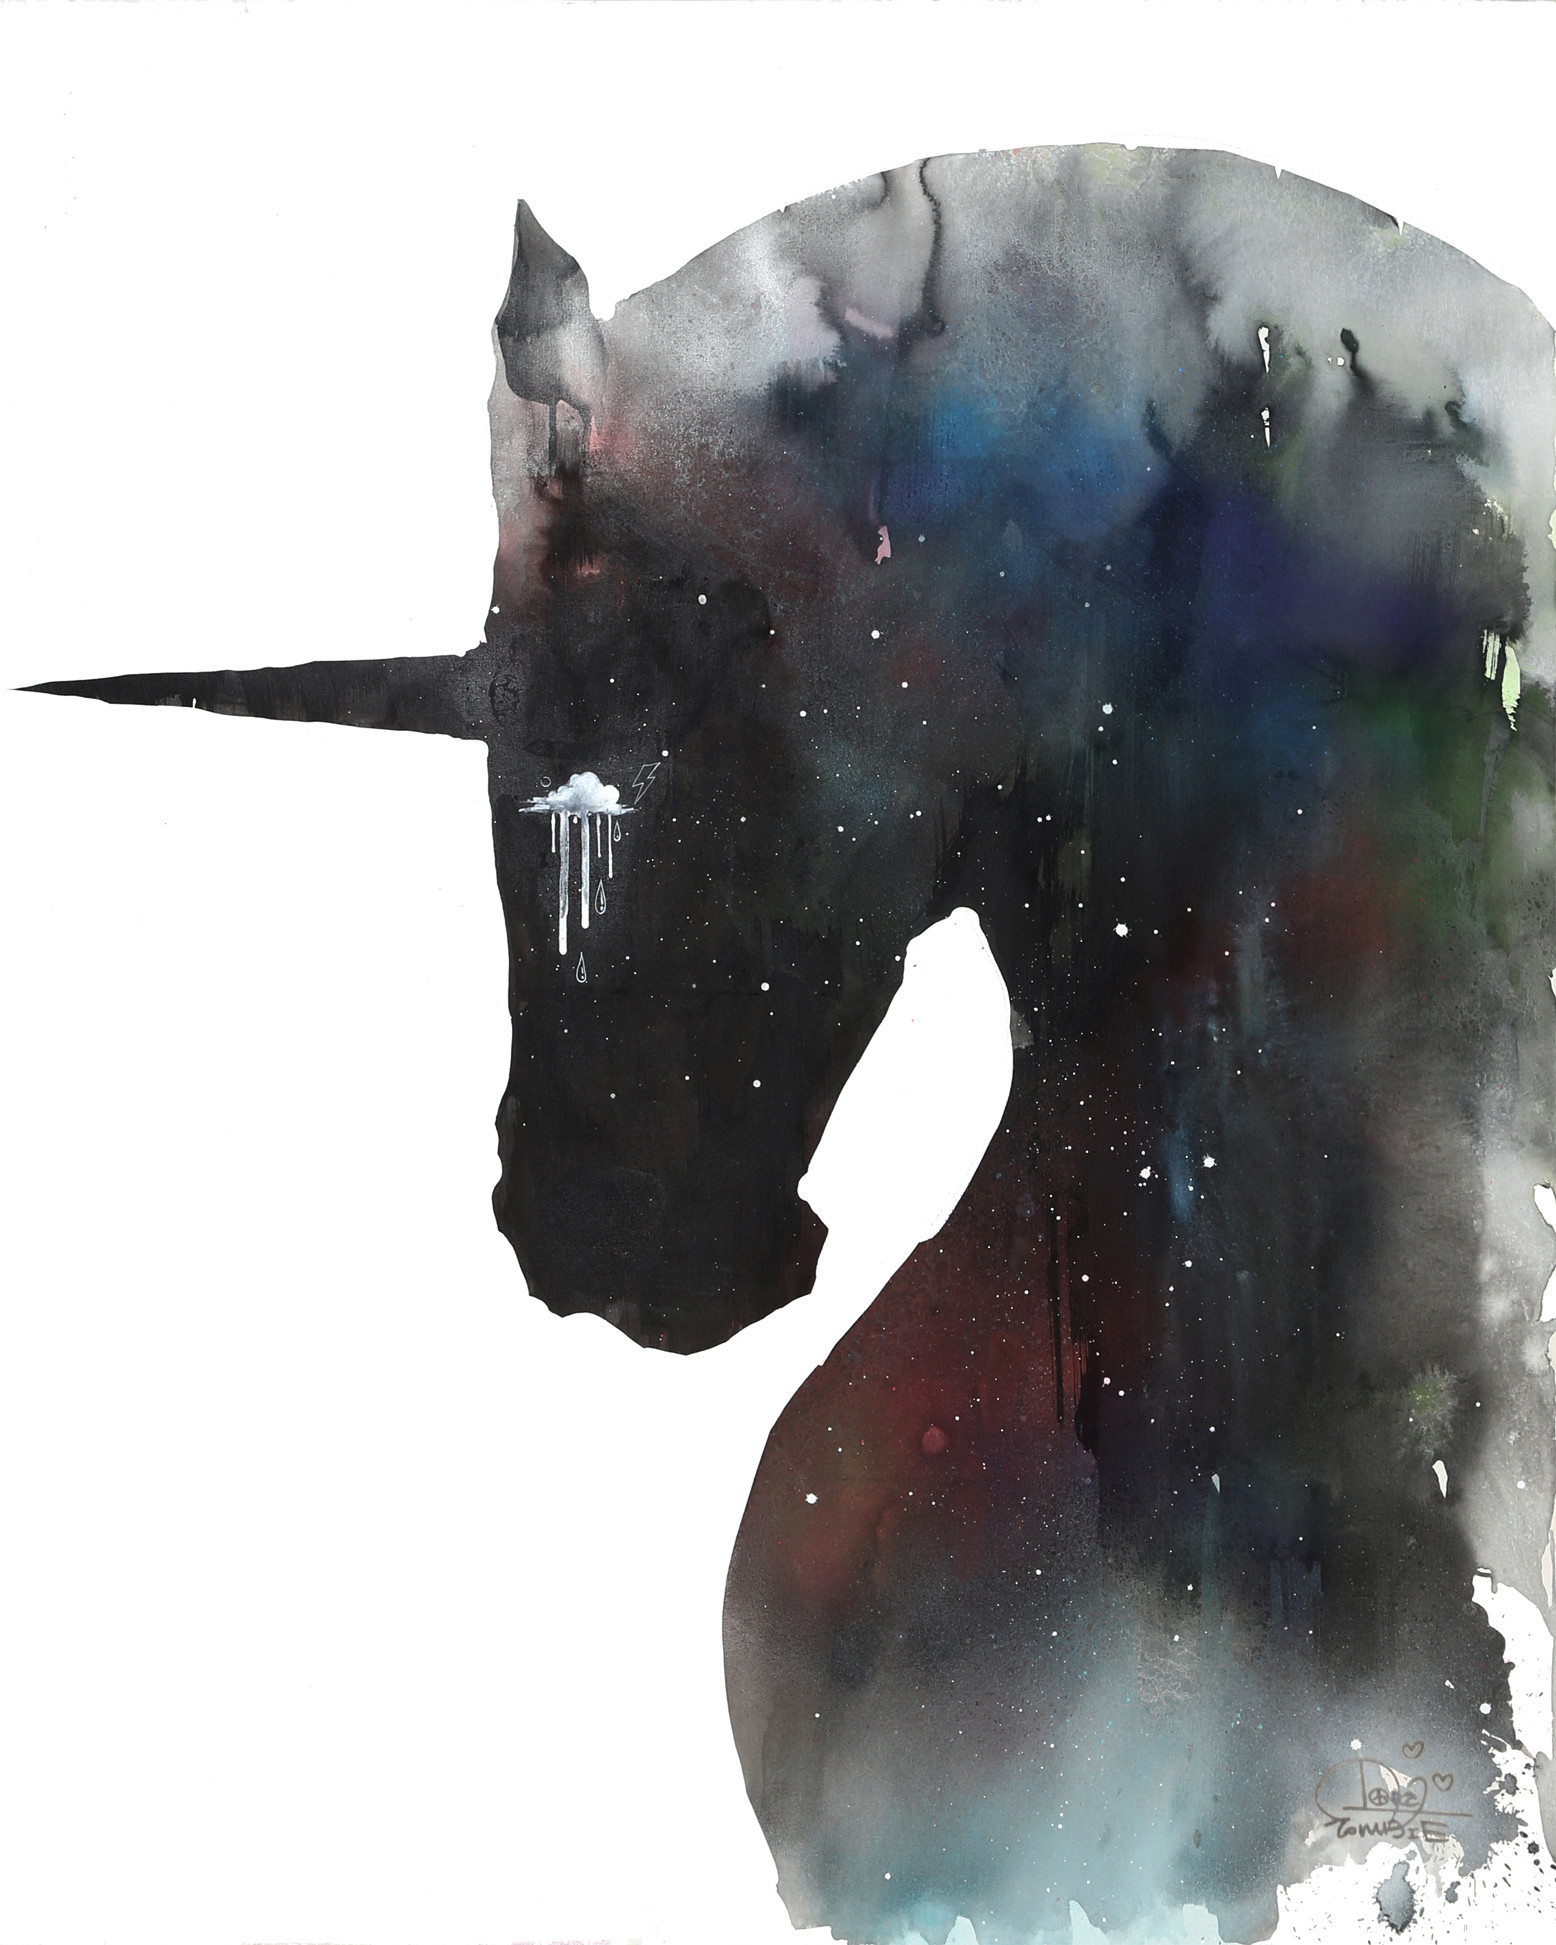 Dark-Unicorn-by-Lora-Zombie-Fine-Art-Prints-available-exclusively-at-EyesOnWalls-com-http-www-wallpaper-wp5604236